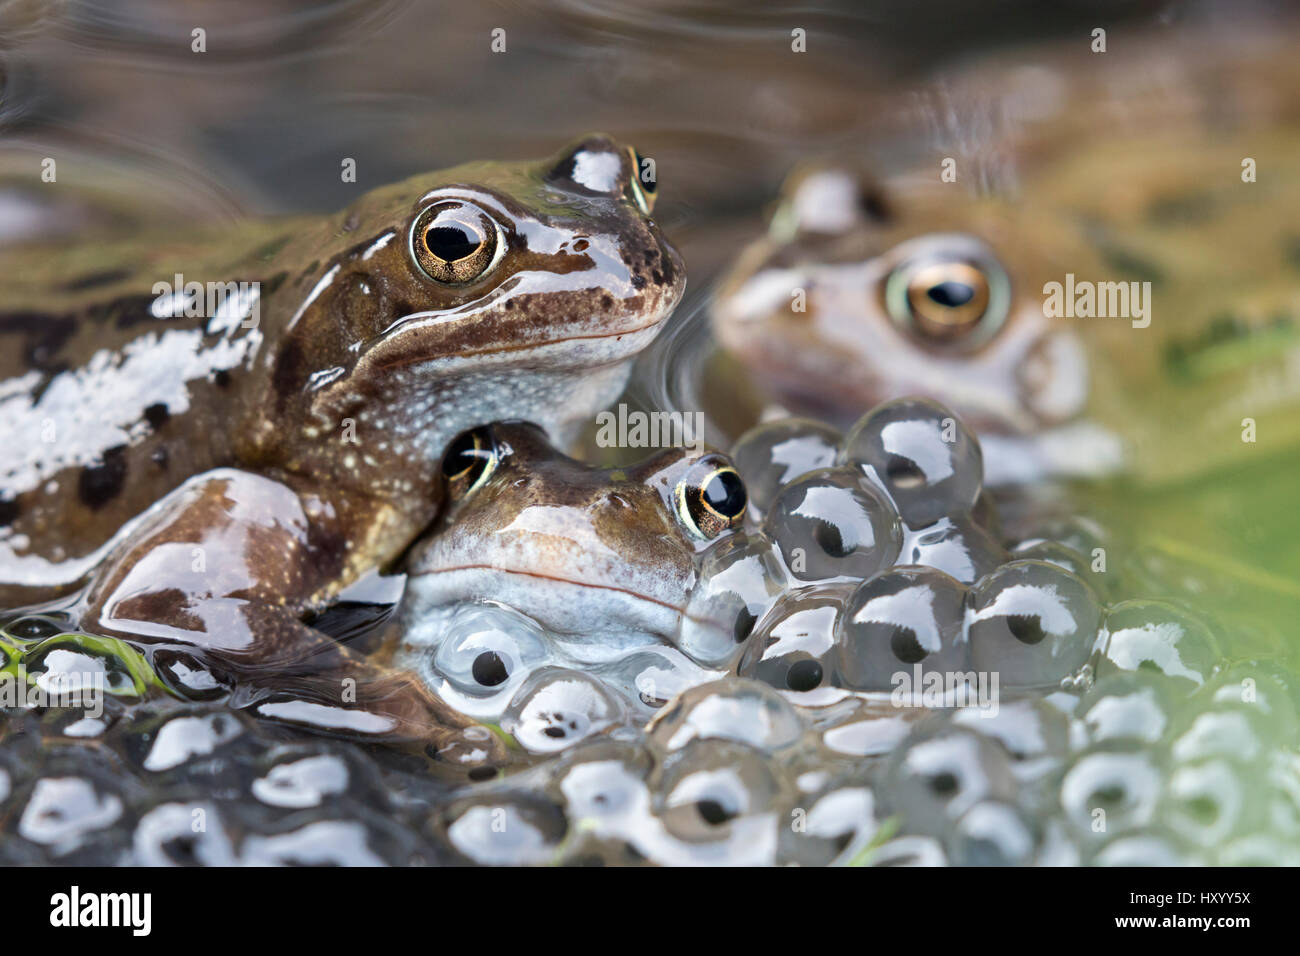 Common frogs (Rana temporaria) in spawning pond, Northumberland, UK, March. - Stock Image